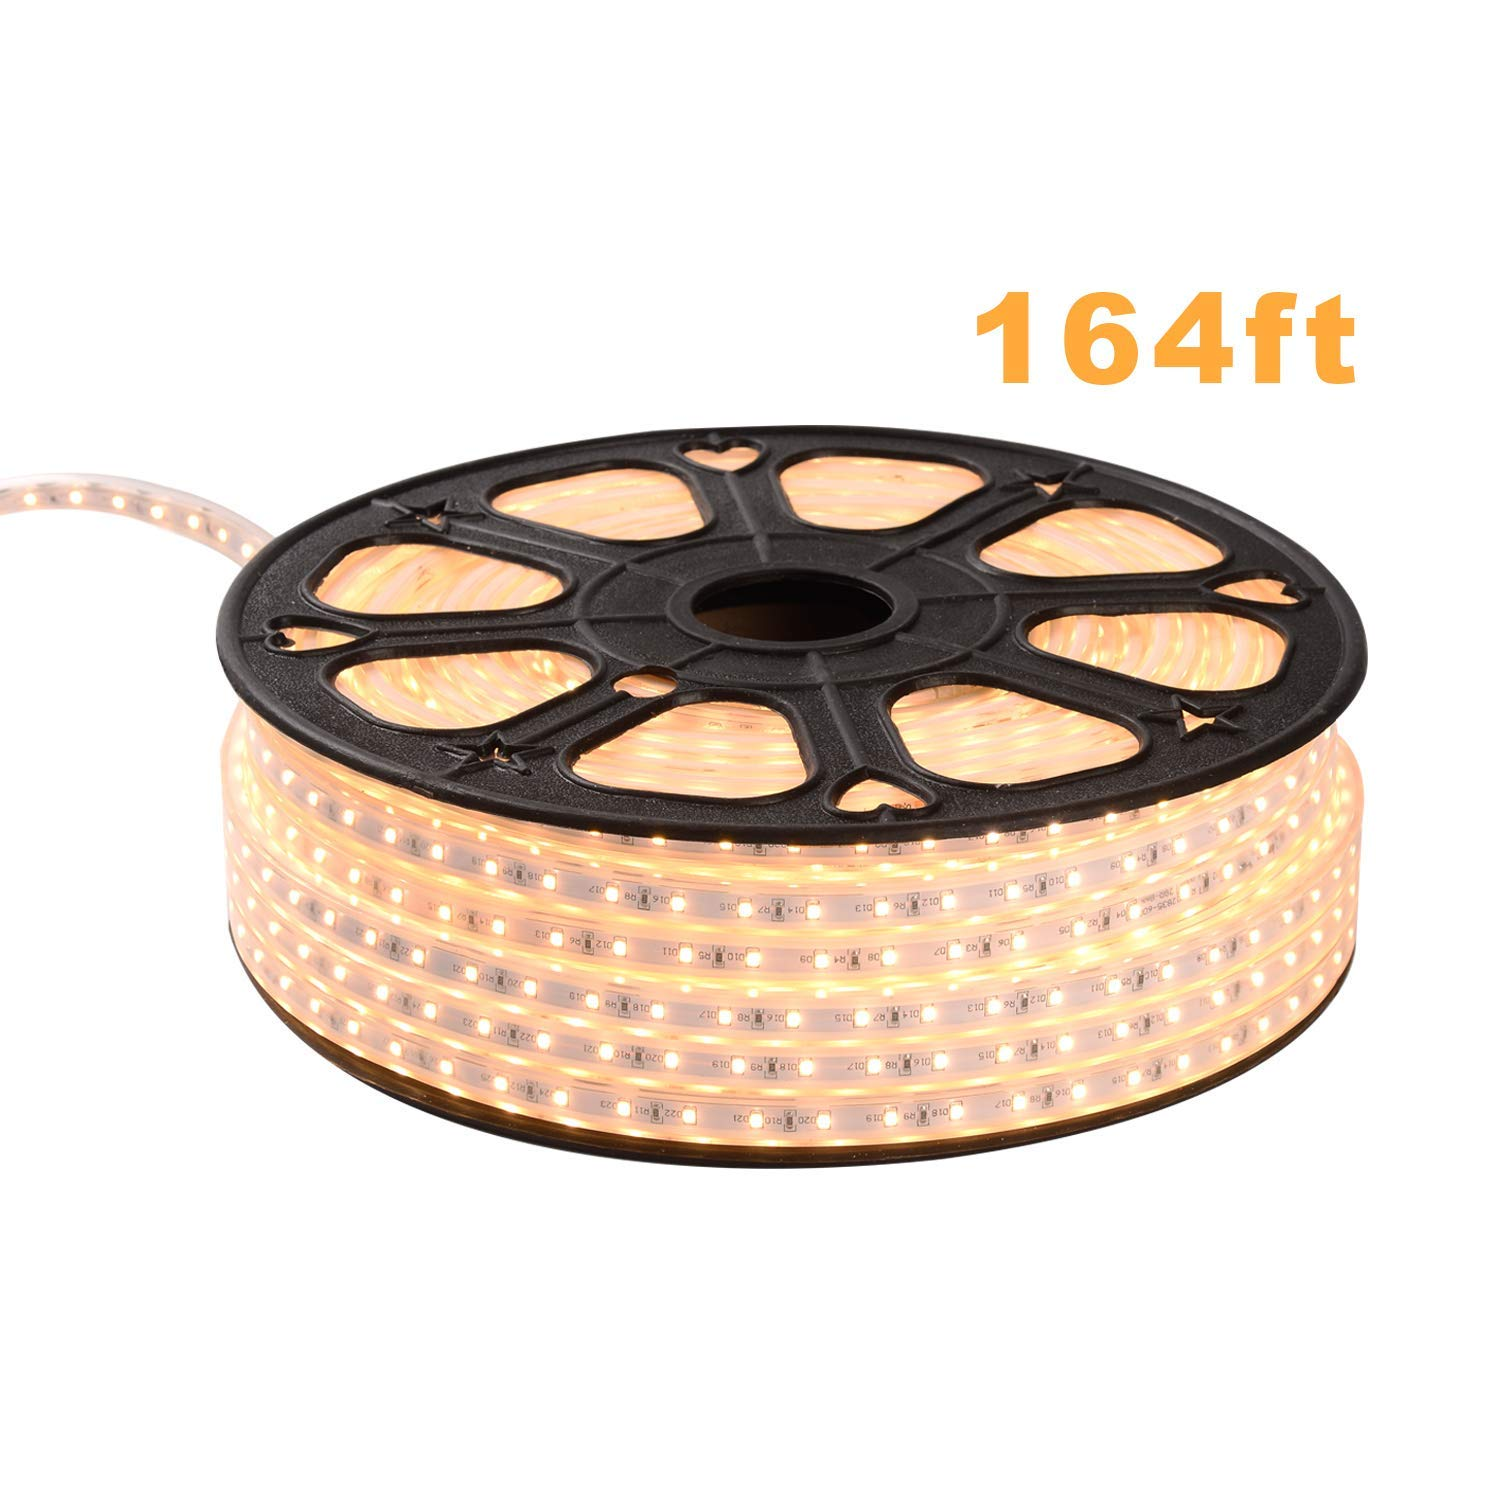 Shine Decor 110V Cuttable LED Strip Lights | Super Bright Plug & Play Light Strip for Indoor Outdoor Lighting | Safe Flexible Glowing Lights for Party Decorations & Ambient Spaces | 164ft Warm White